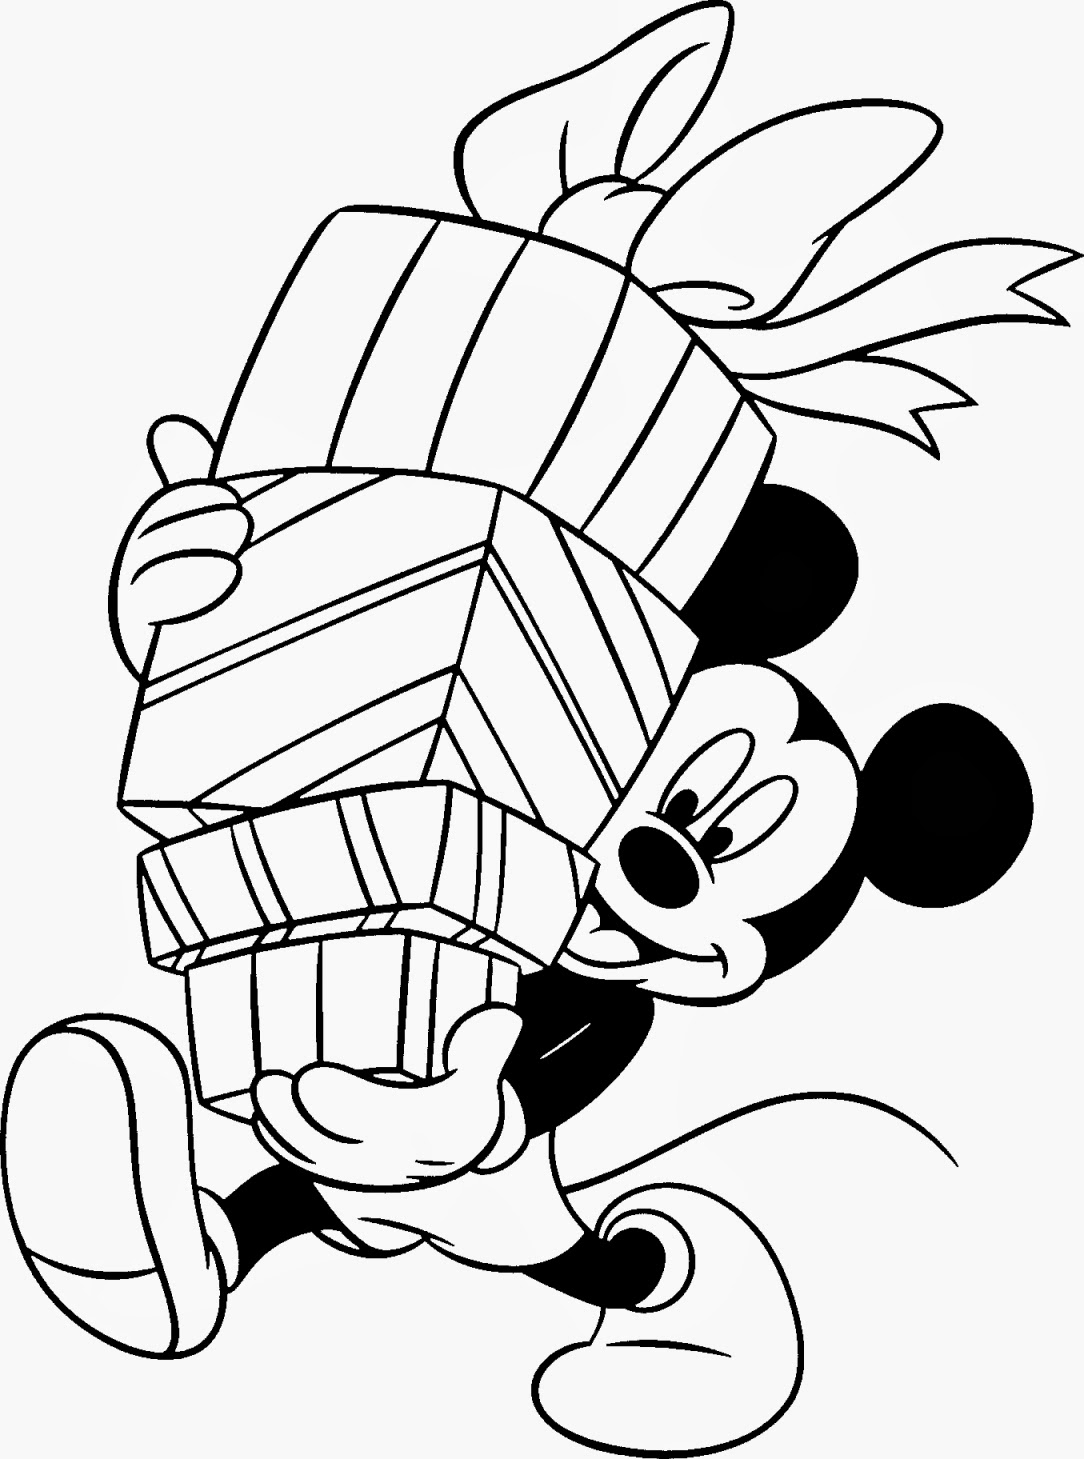 Top 10 disney christmas coloring pages for kids for Disney christmas printable coloring pages